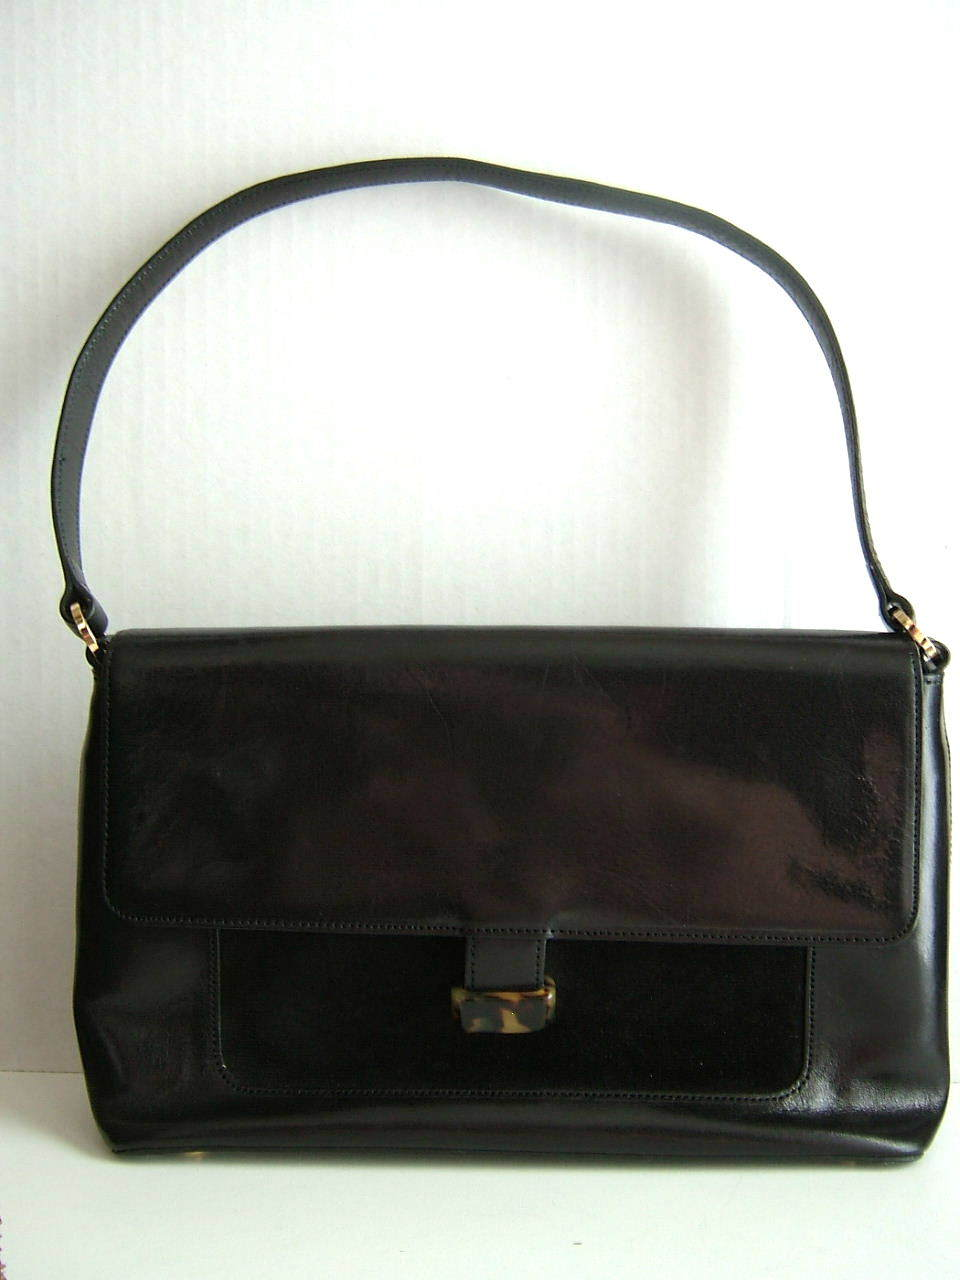 Vintage Ann Taylor Black Handbag with Tortoise Closure